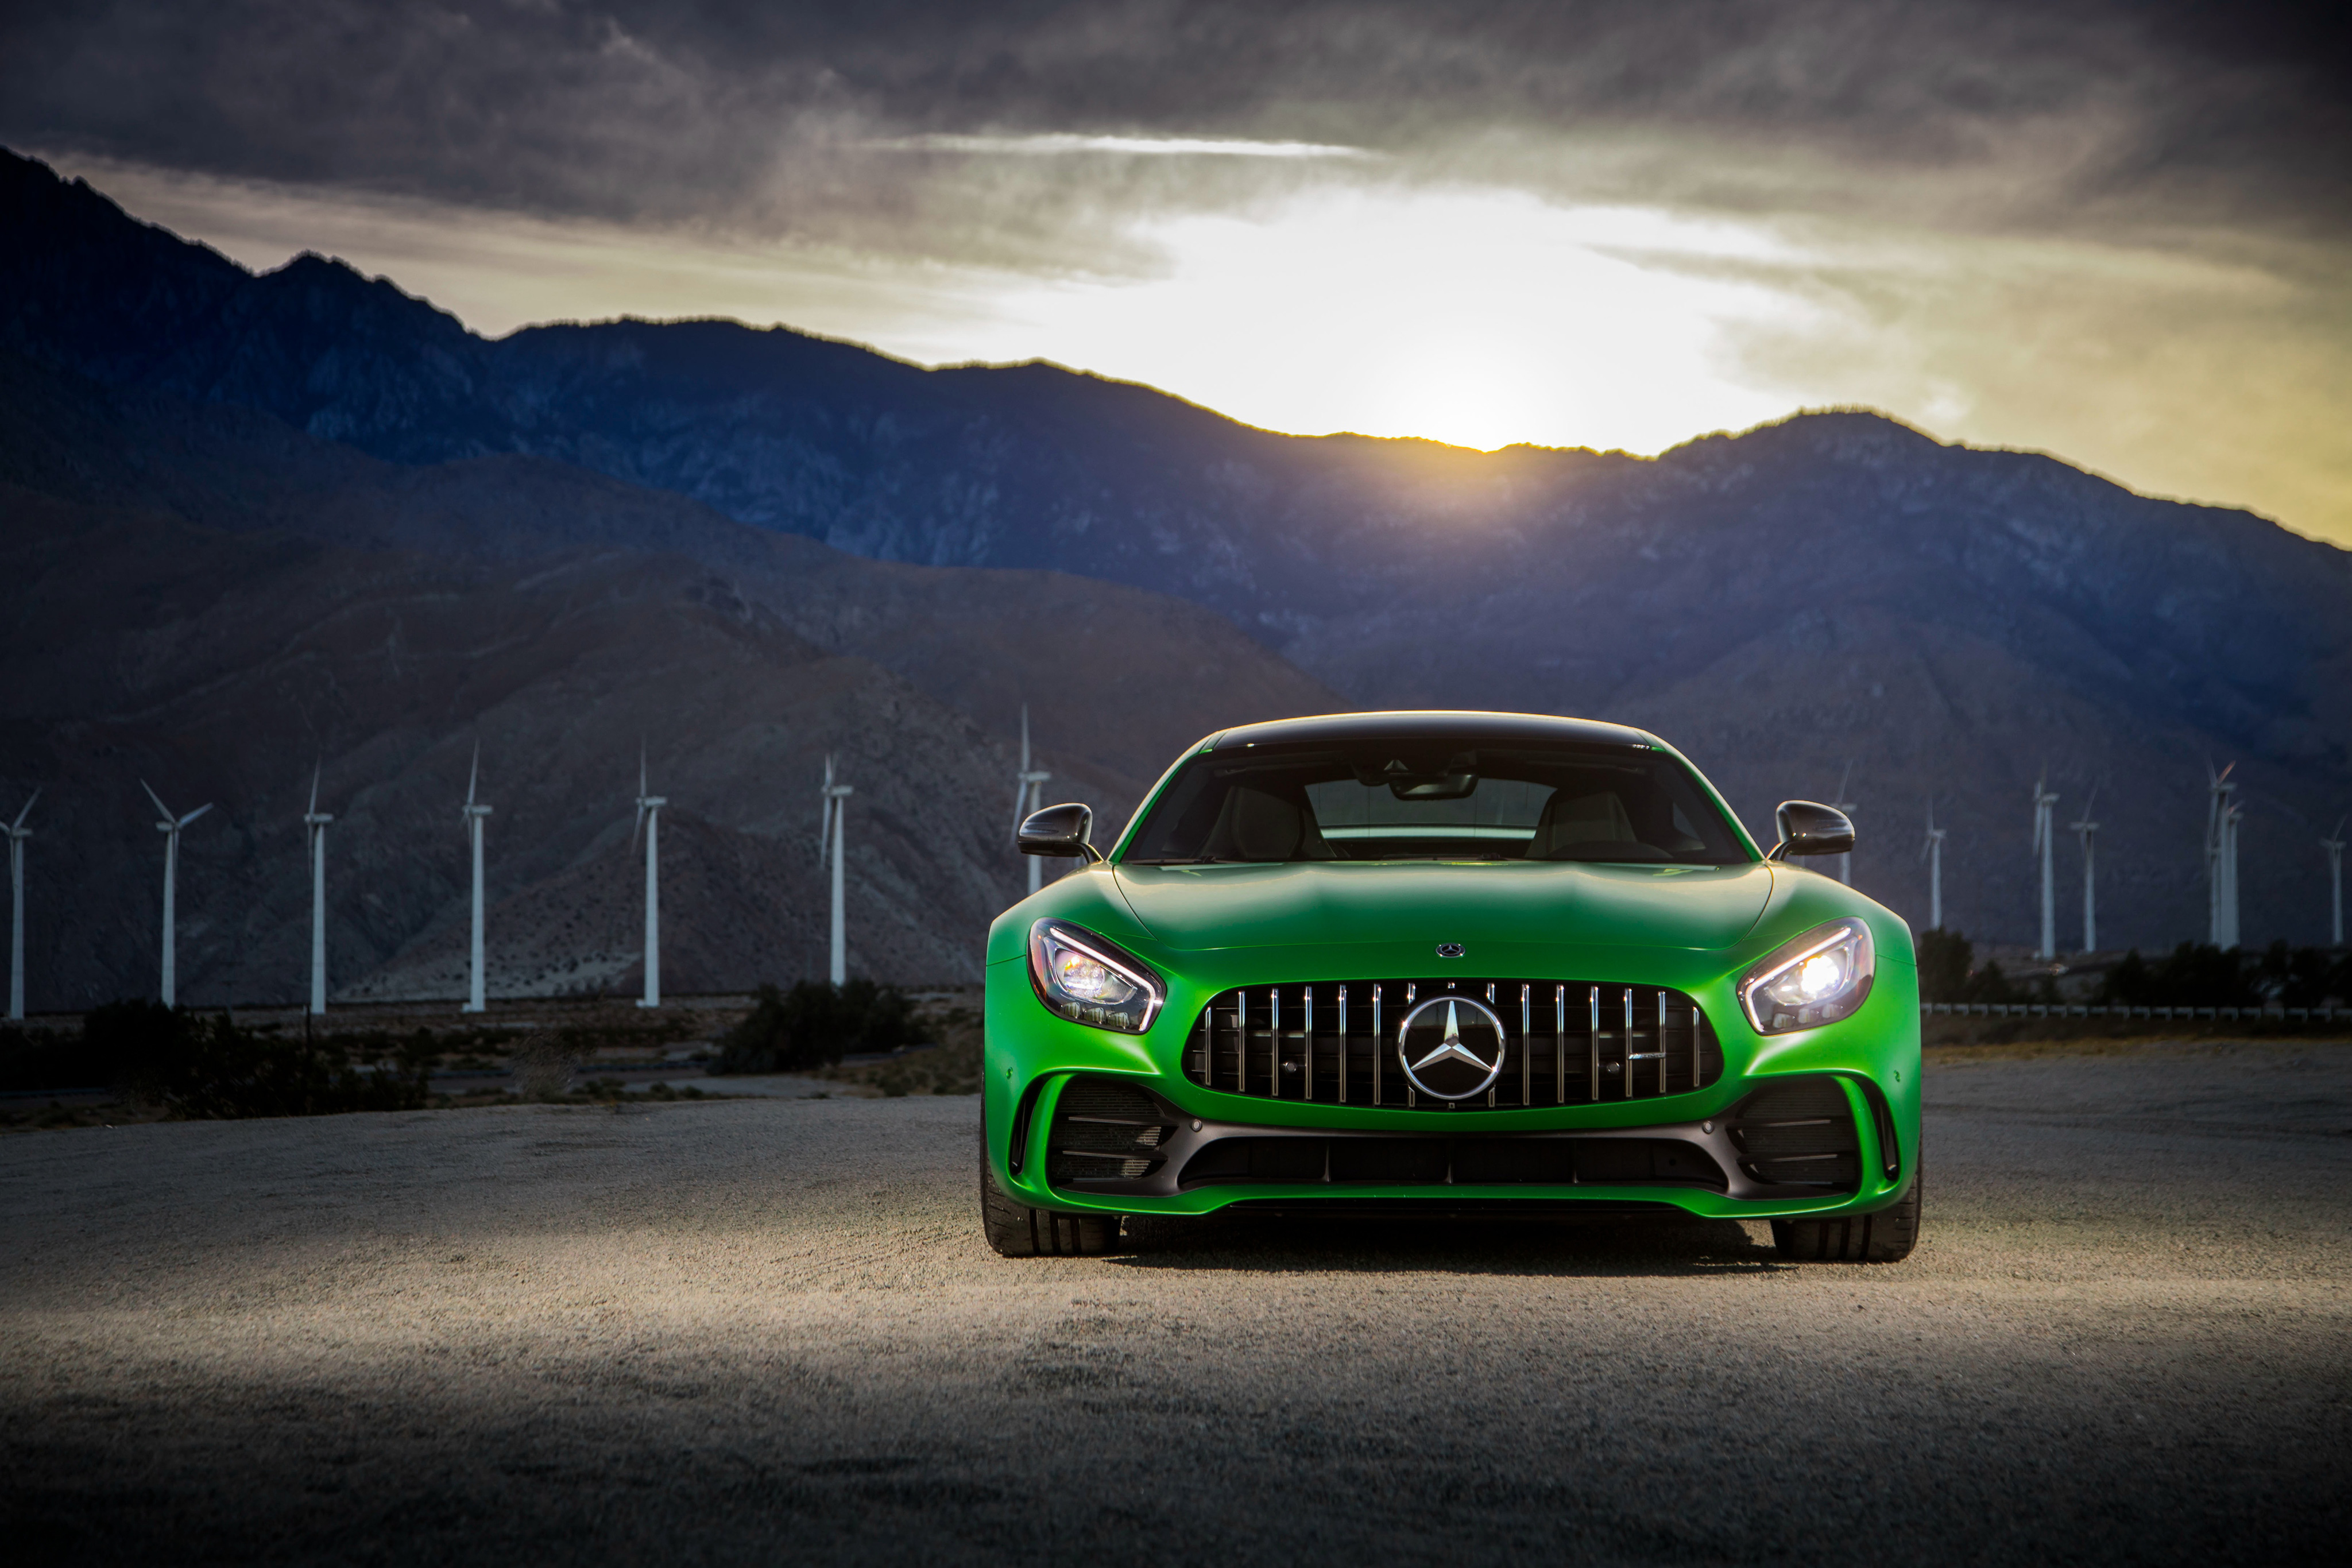 2560x1440 Mercedes AMG GT R 2018 1440P Resolution HD 4k ...